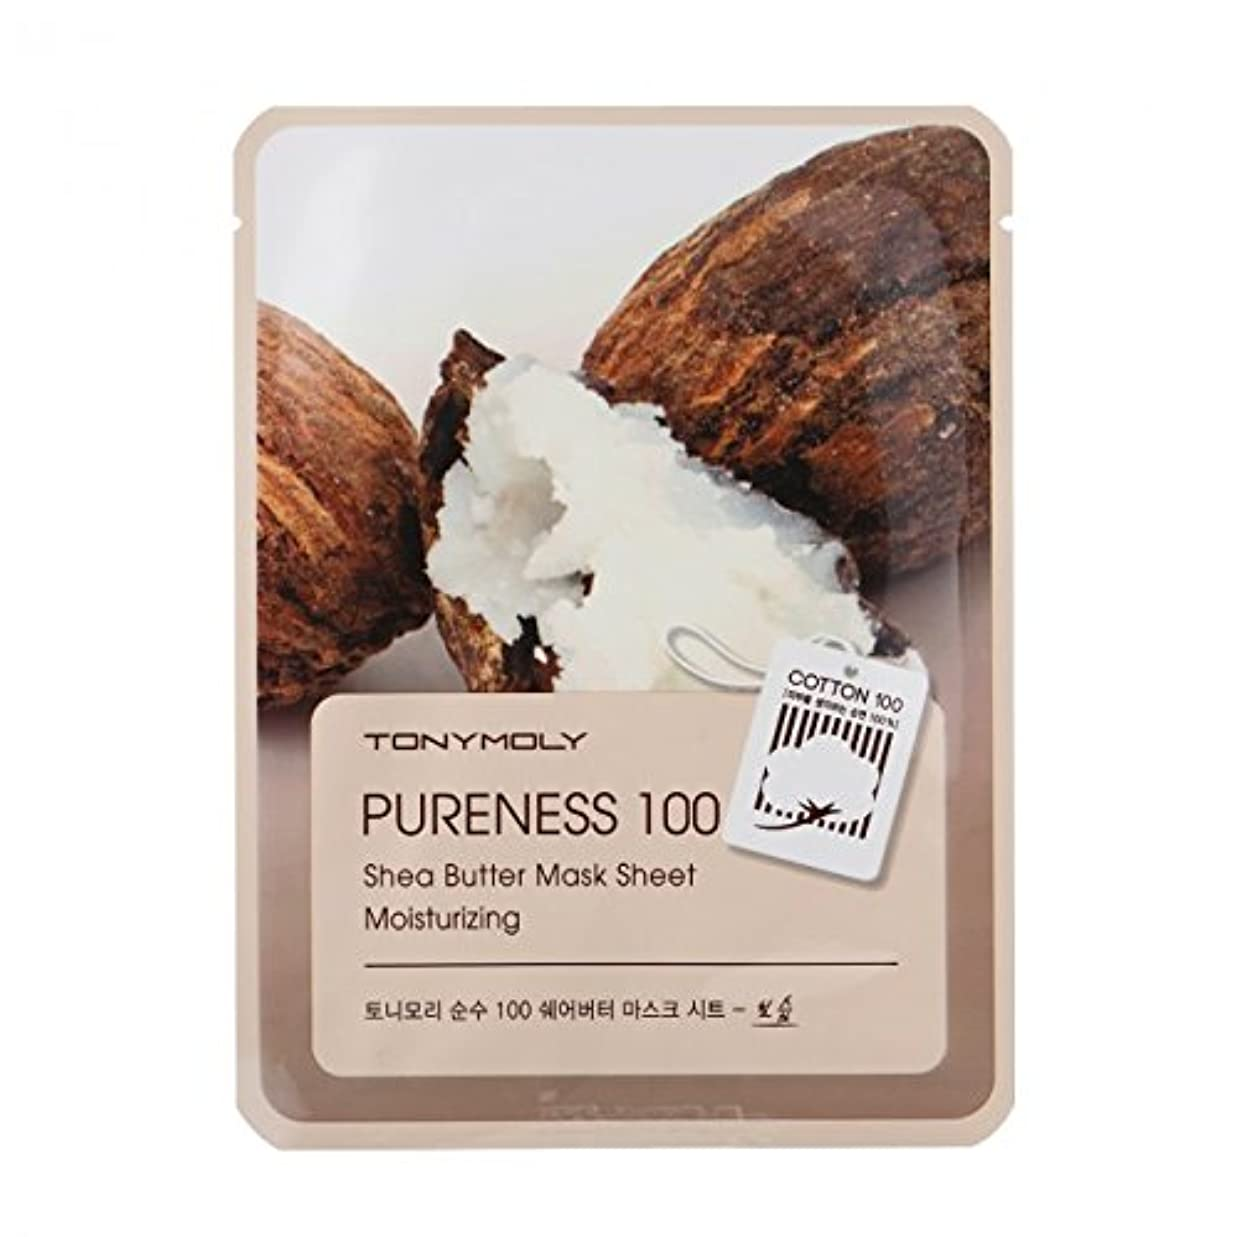 ほうき急襲神経衰弱(6 Pack) TONYMOLY Pureness 100 Shea Butter Mask Sheet Moisturizing (並行輸入品)